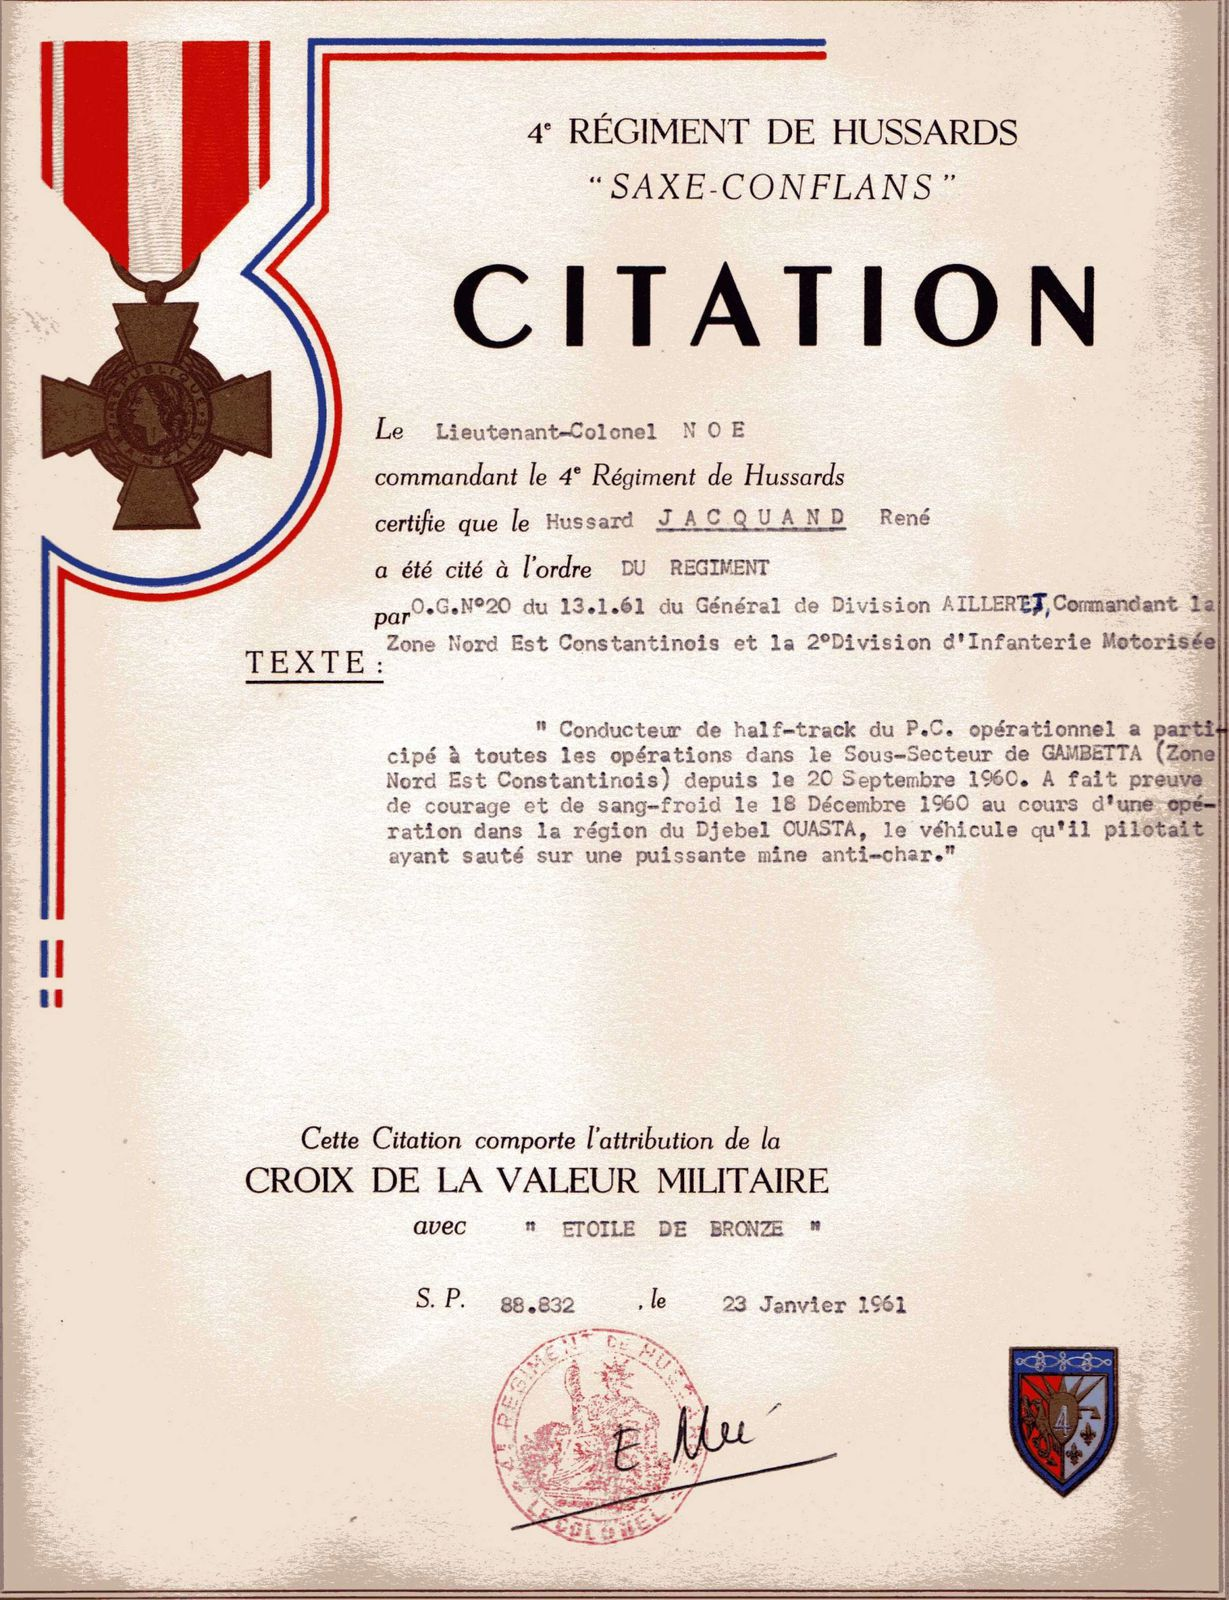 Citation rencontre amicale